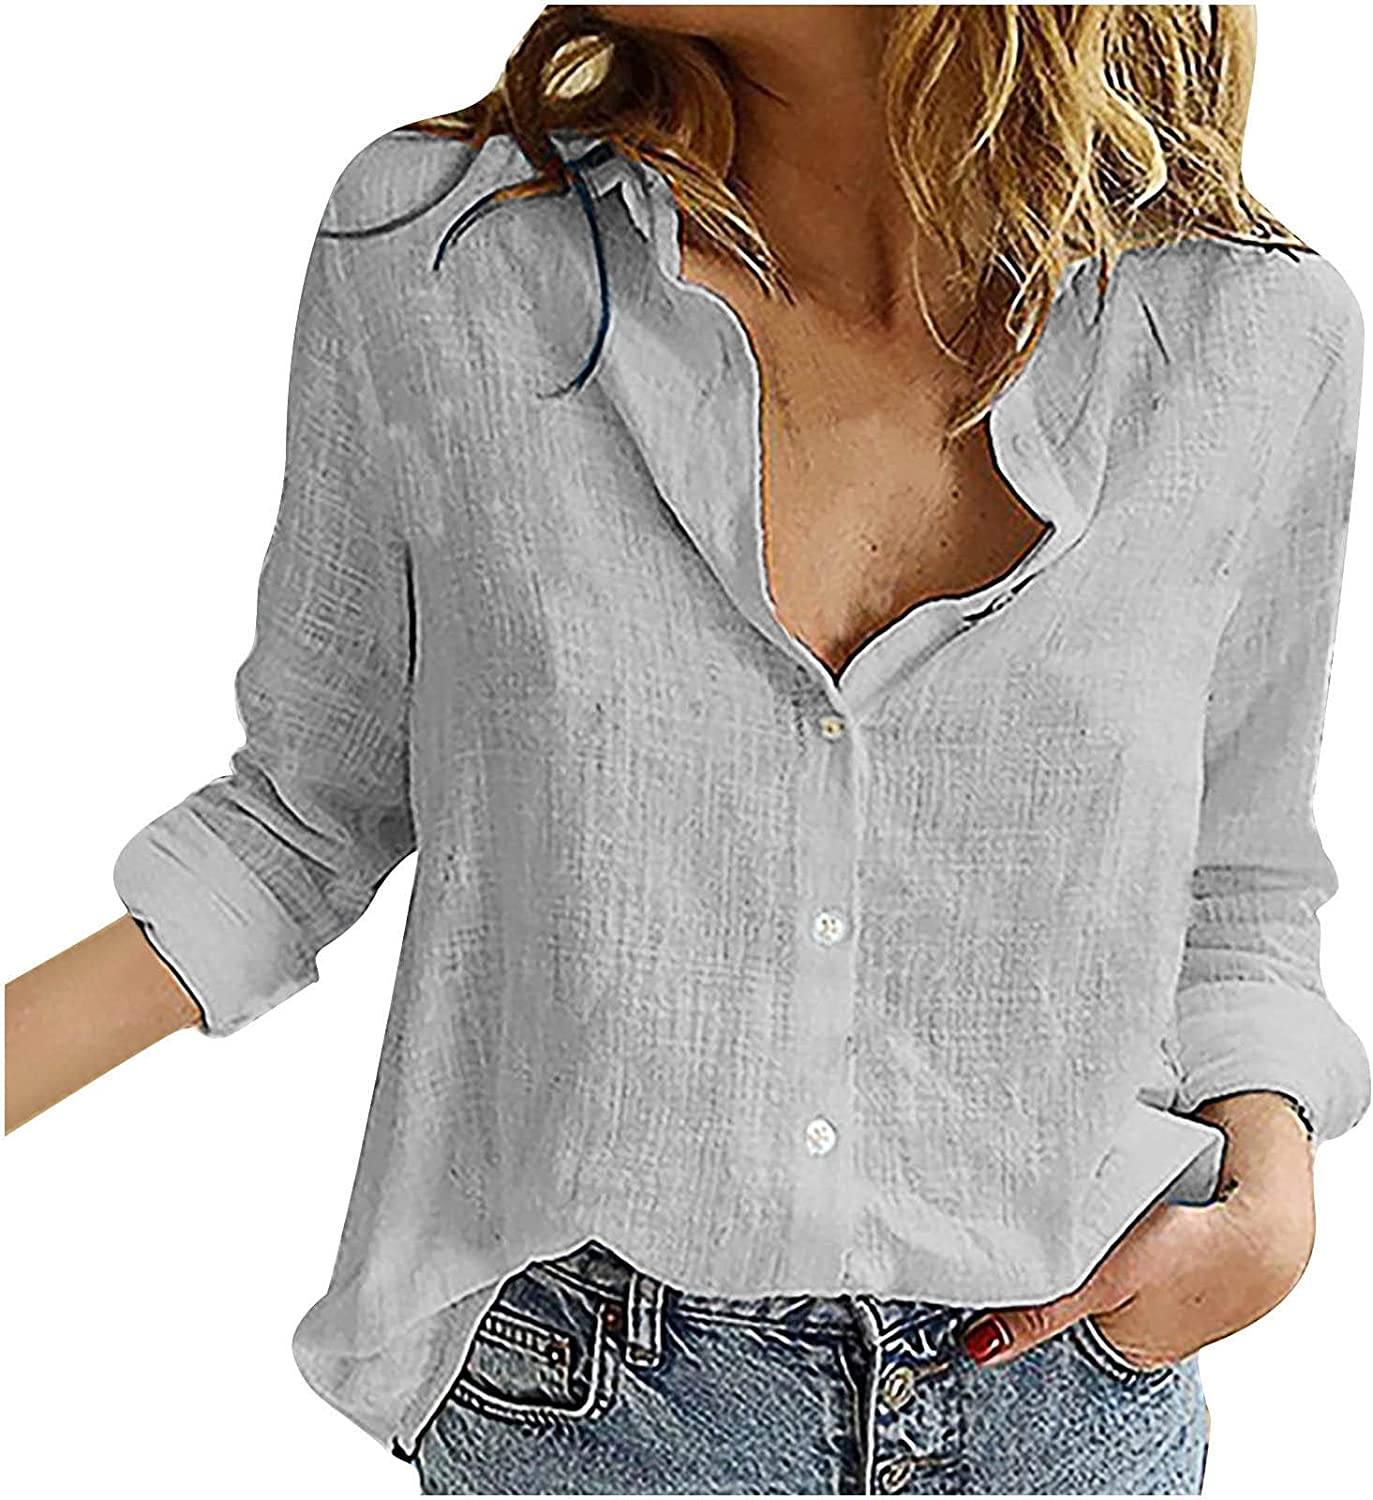 Women V Neck Roll Up Sleeve Shirt Button Down Blouses Tops Long Sleeve Blouse Cuffed Sleeve Casual Work Plain Tops